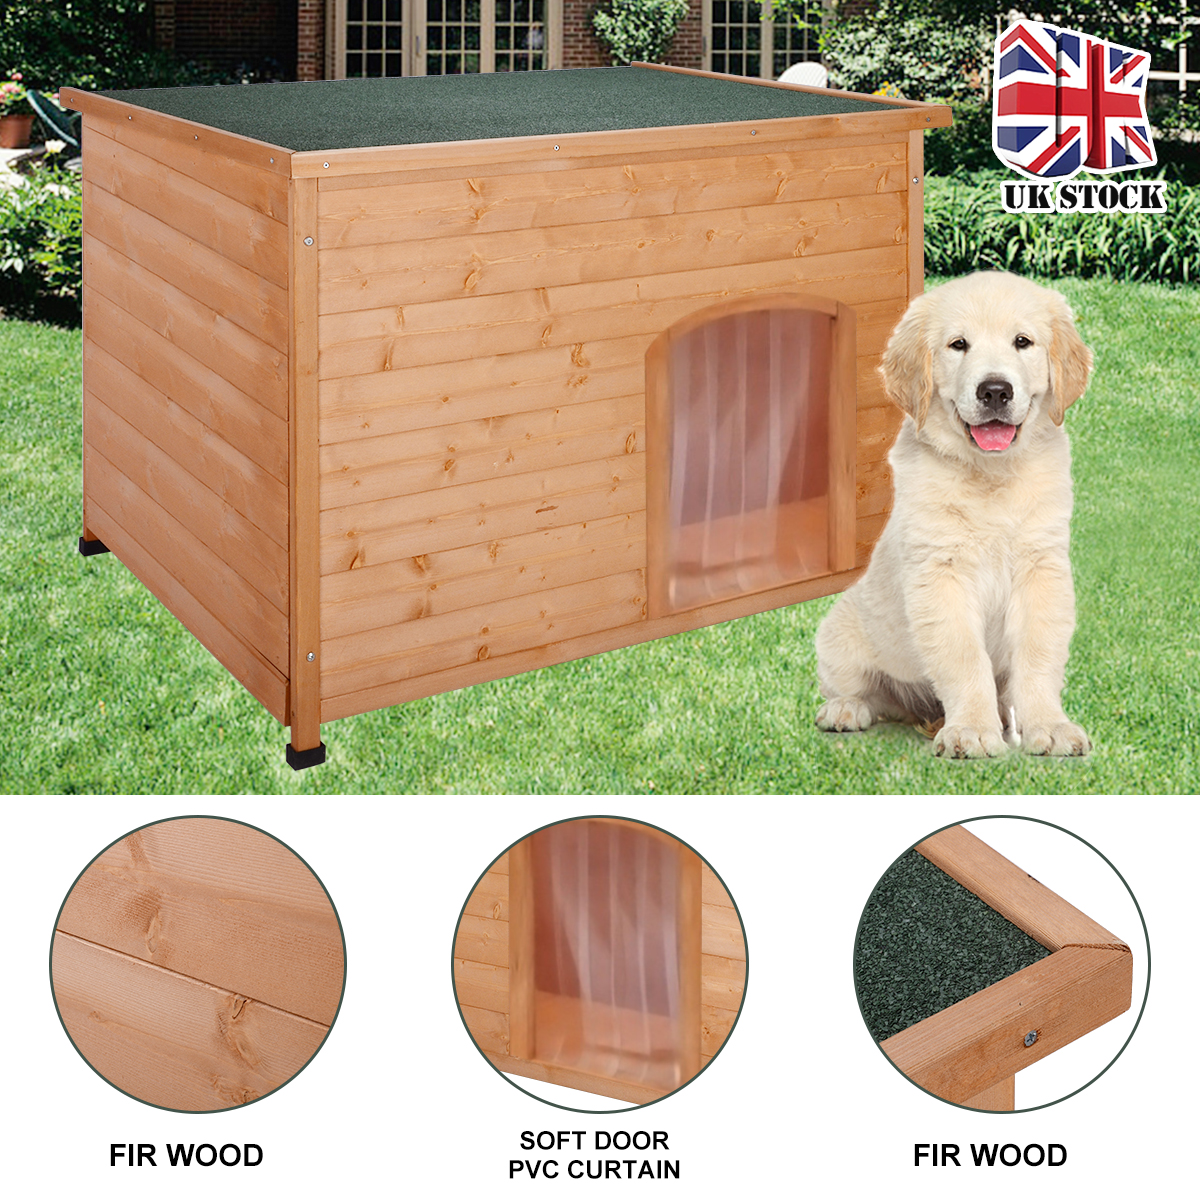 <font><b>Wooden</b></font> Pet <font><b>Dog</b></font> <font><b>Kennel</b></font> Extra Large Wood Sleeping House Puppy Cat Bed Nest Removable Floor Easy Clean 116*79*81cm image